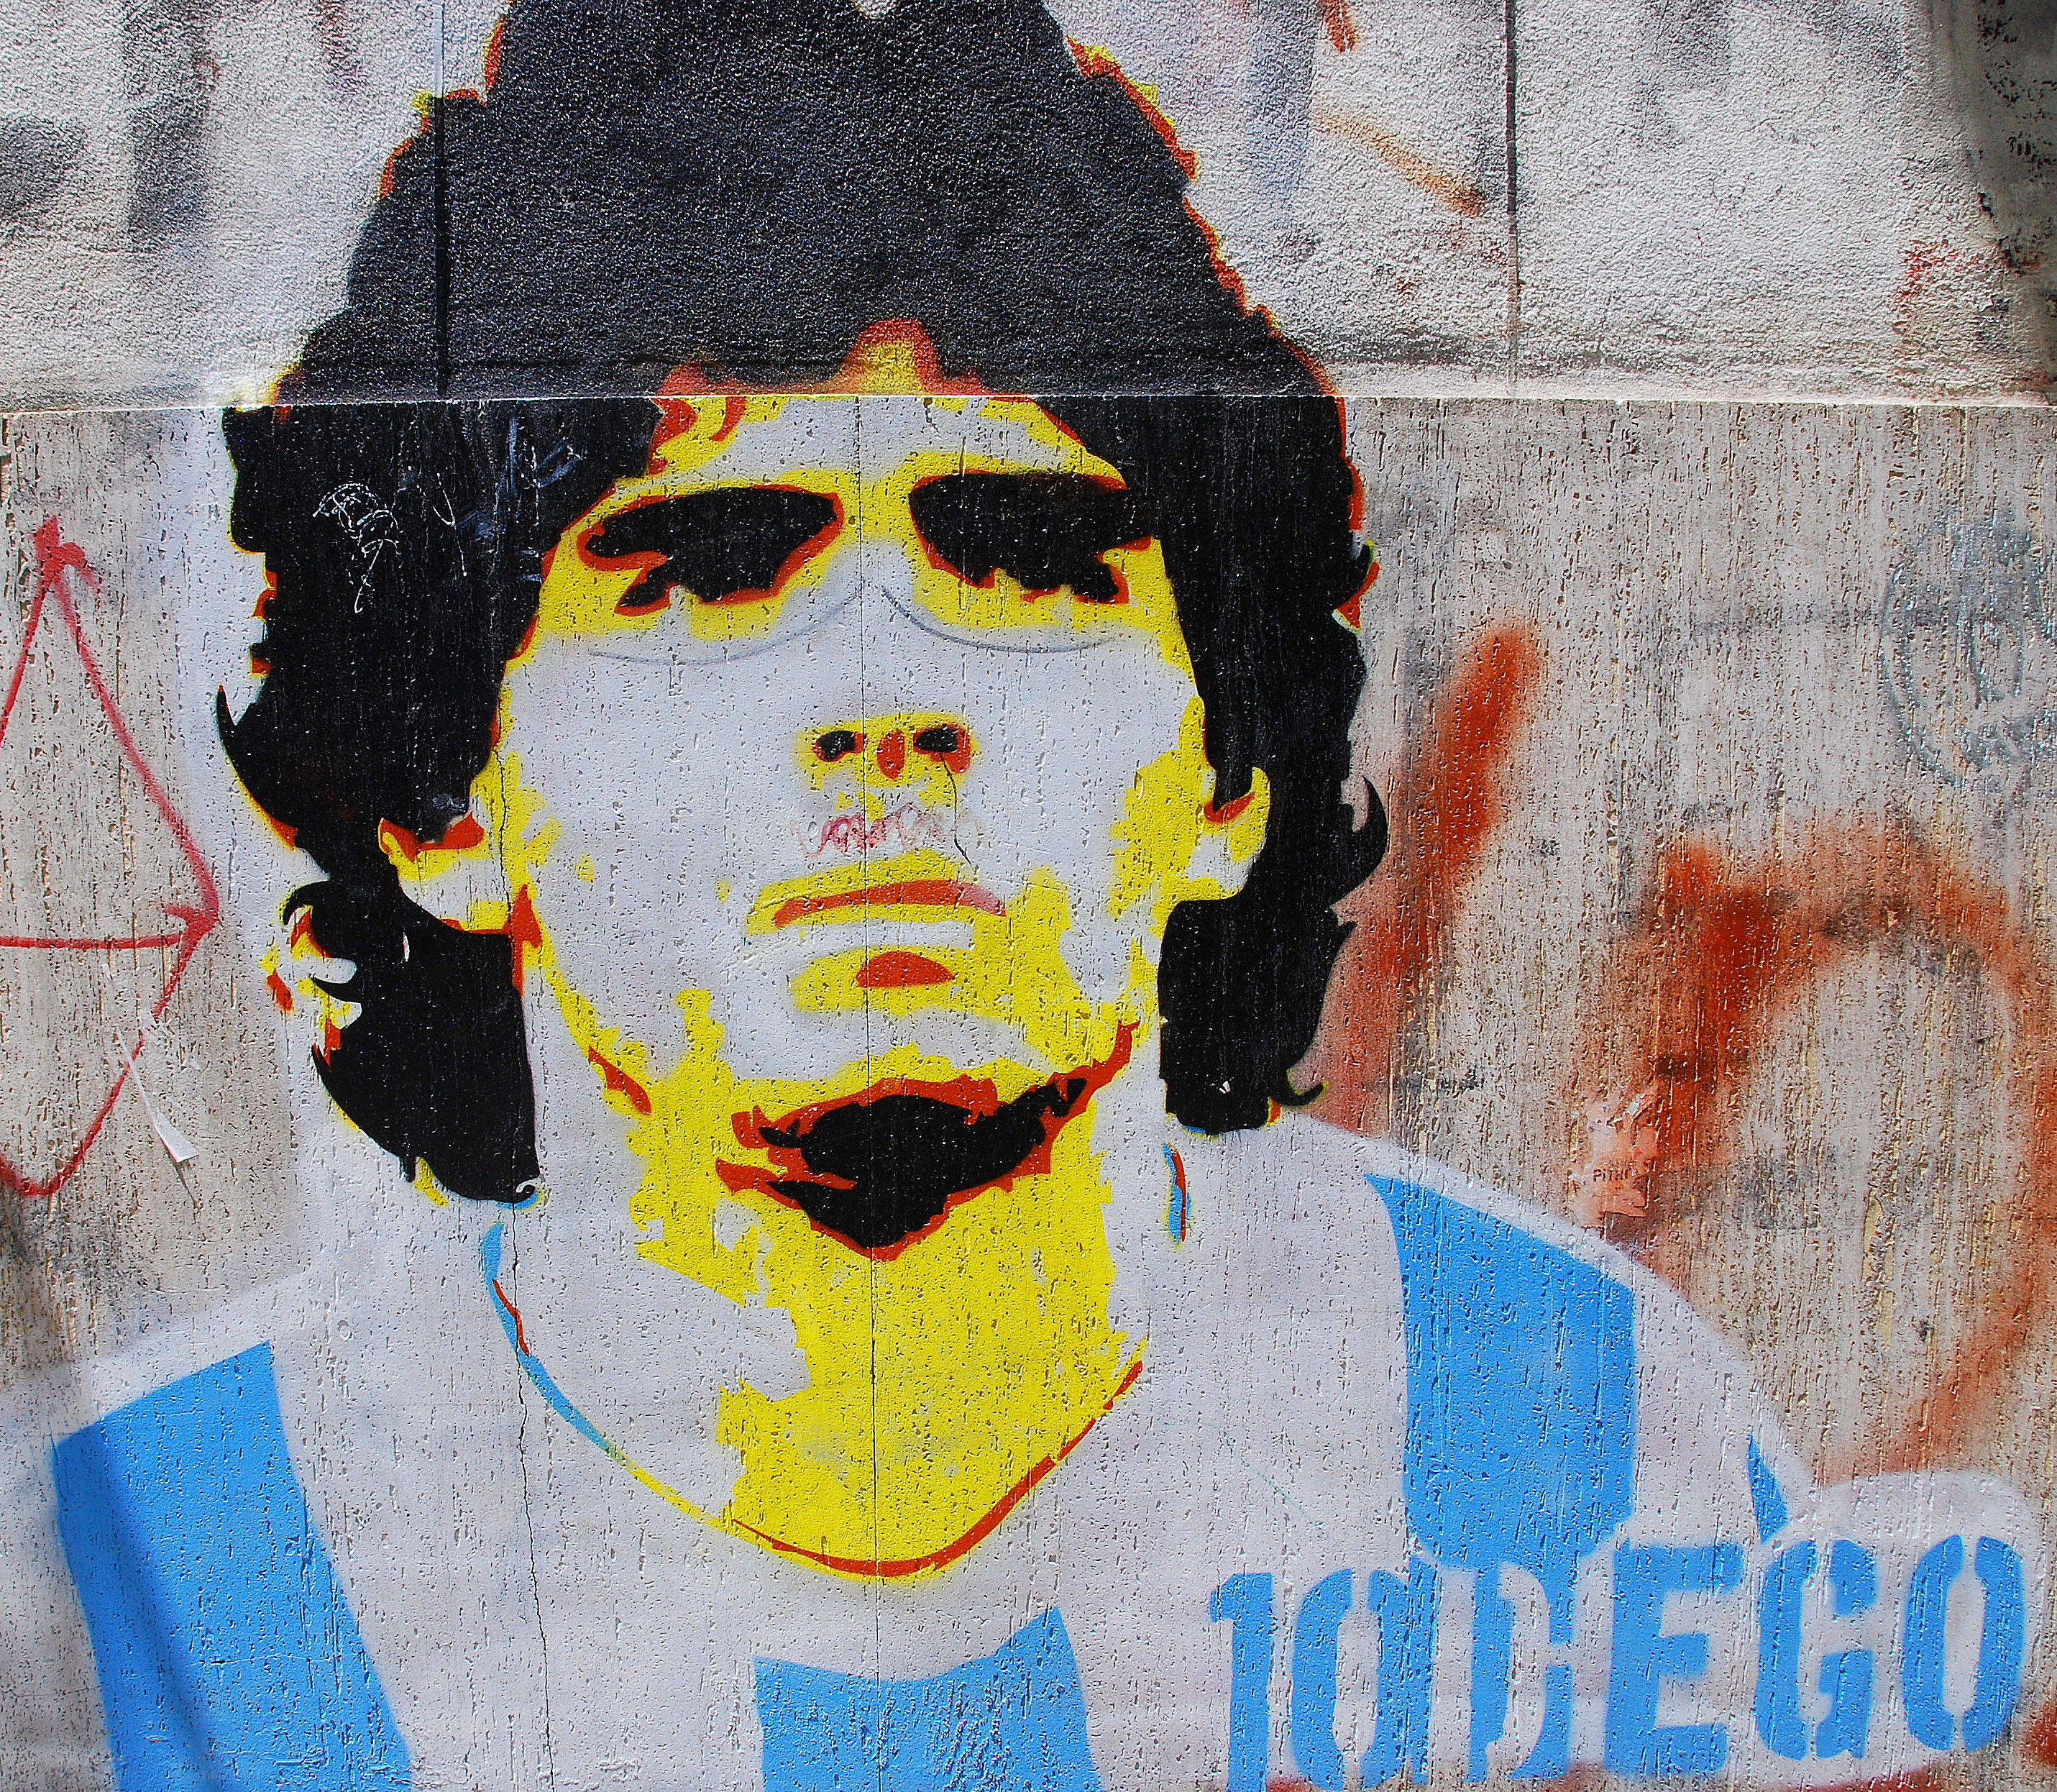 Diego Maradona – A Tribute To The World's Number 10.